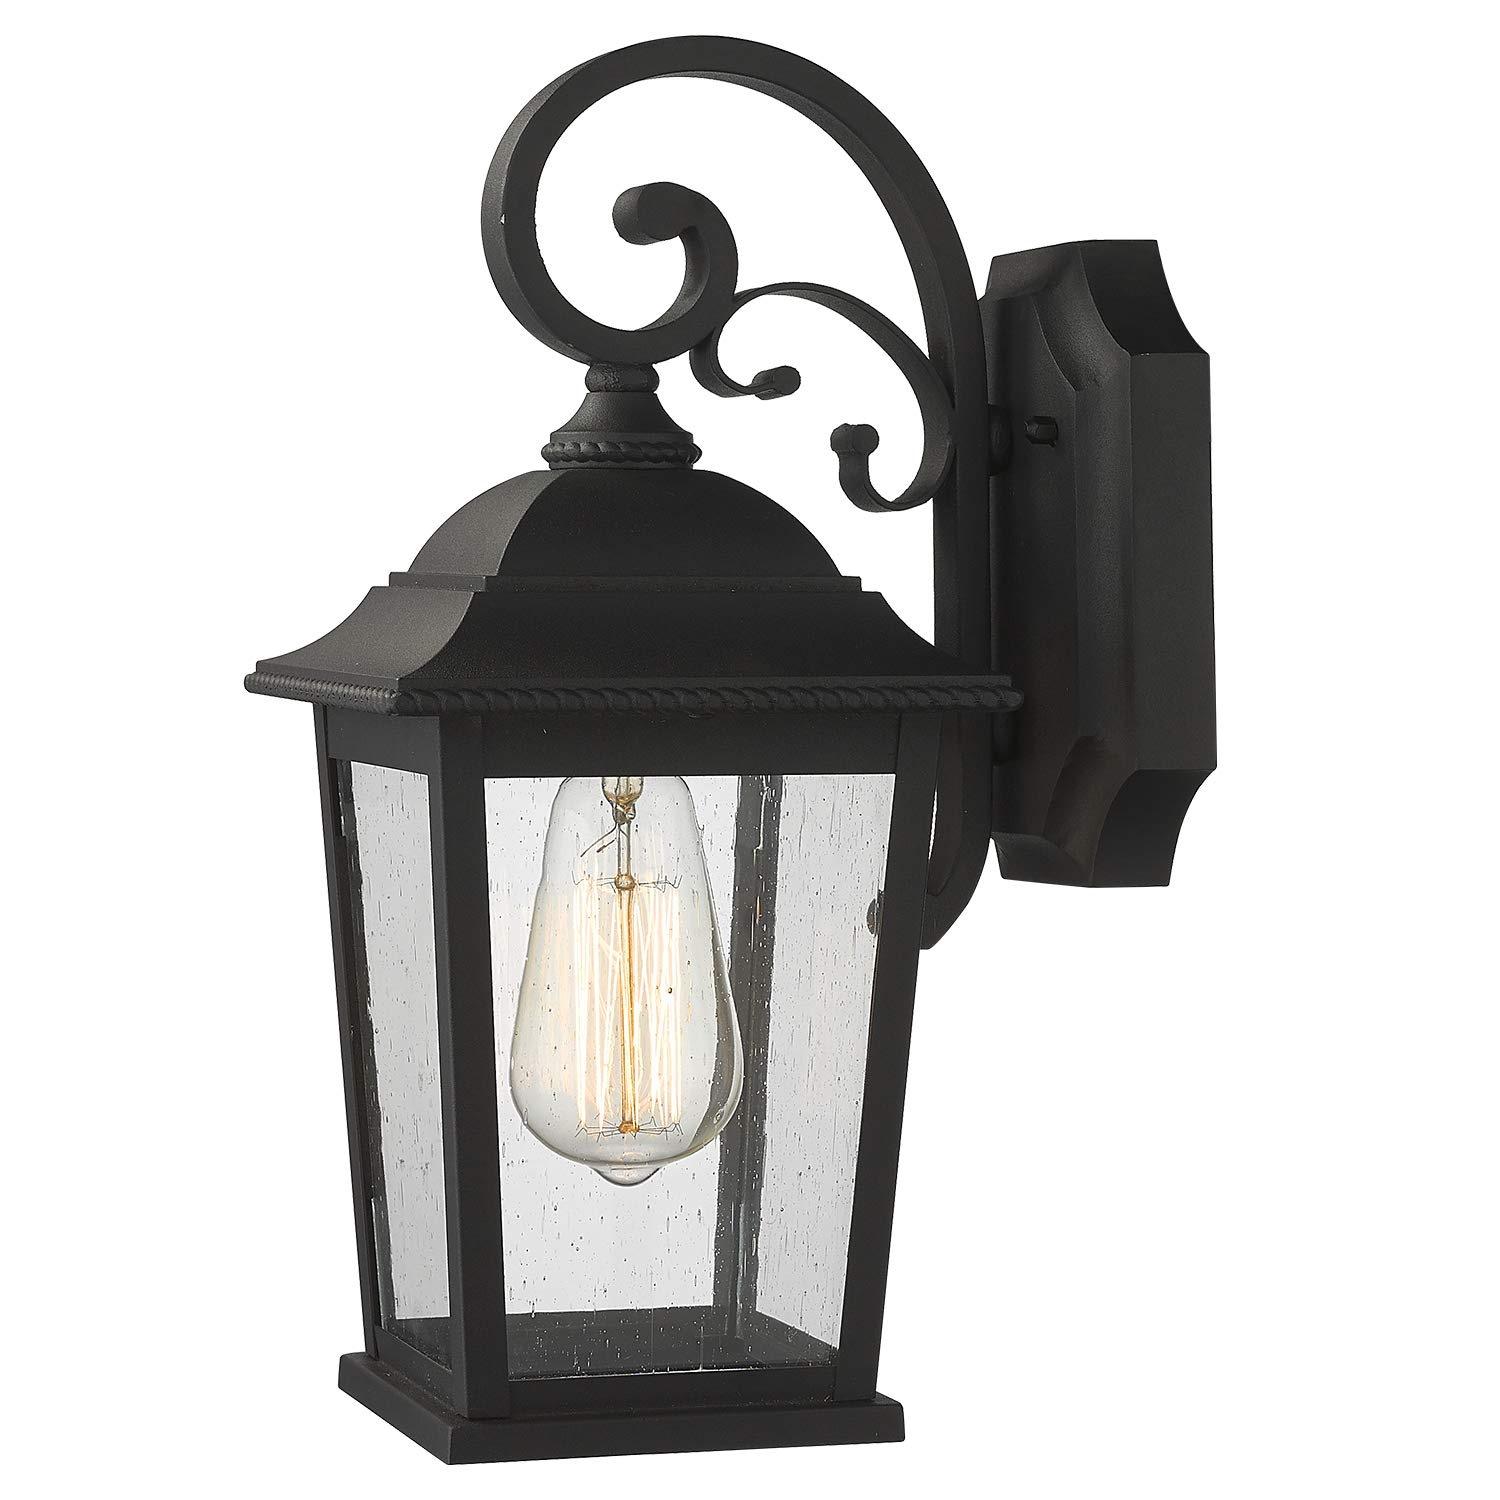 Emliviar Outdoor Wall Lantern Sconce 15 Inch Exterior Wall Lights Modern Design Black Finish With Seeded Glass De19105b1 Bk Amazon Com